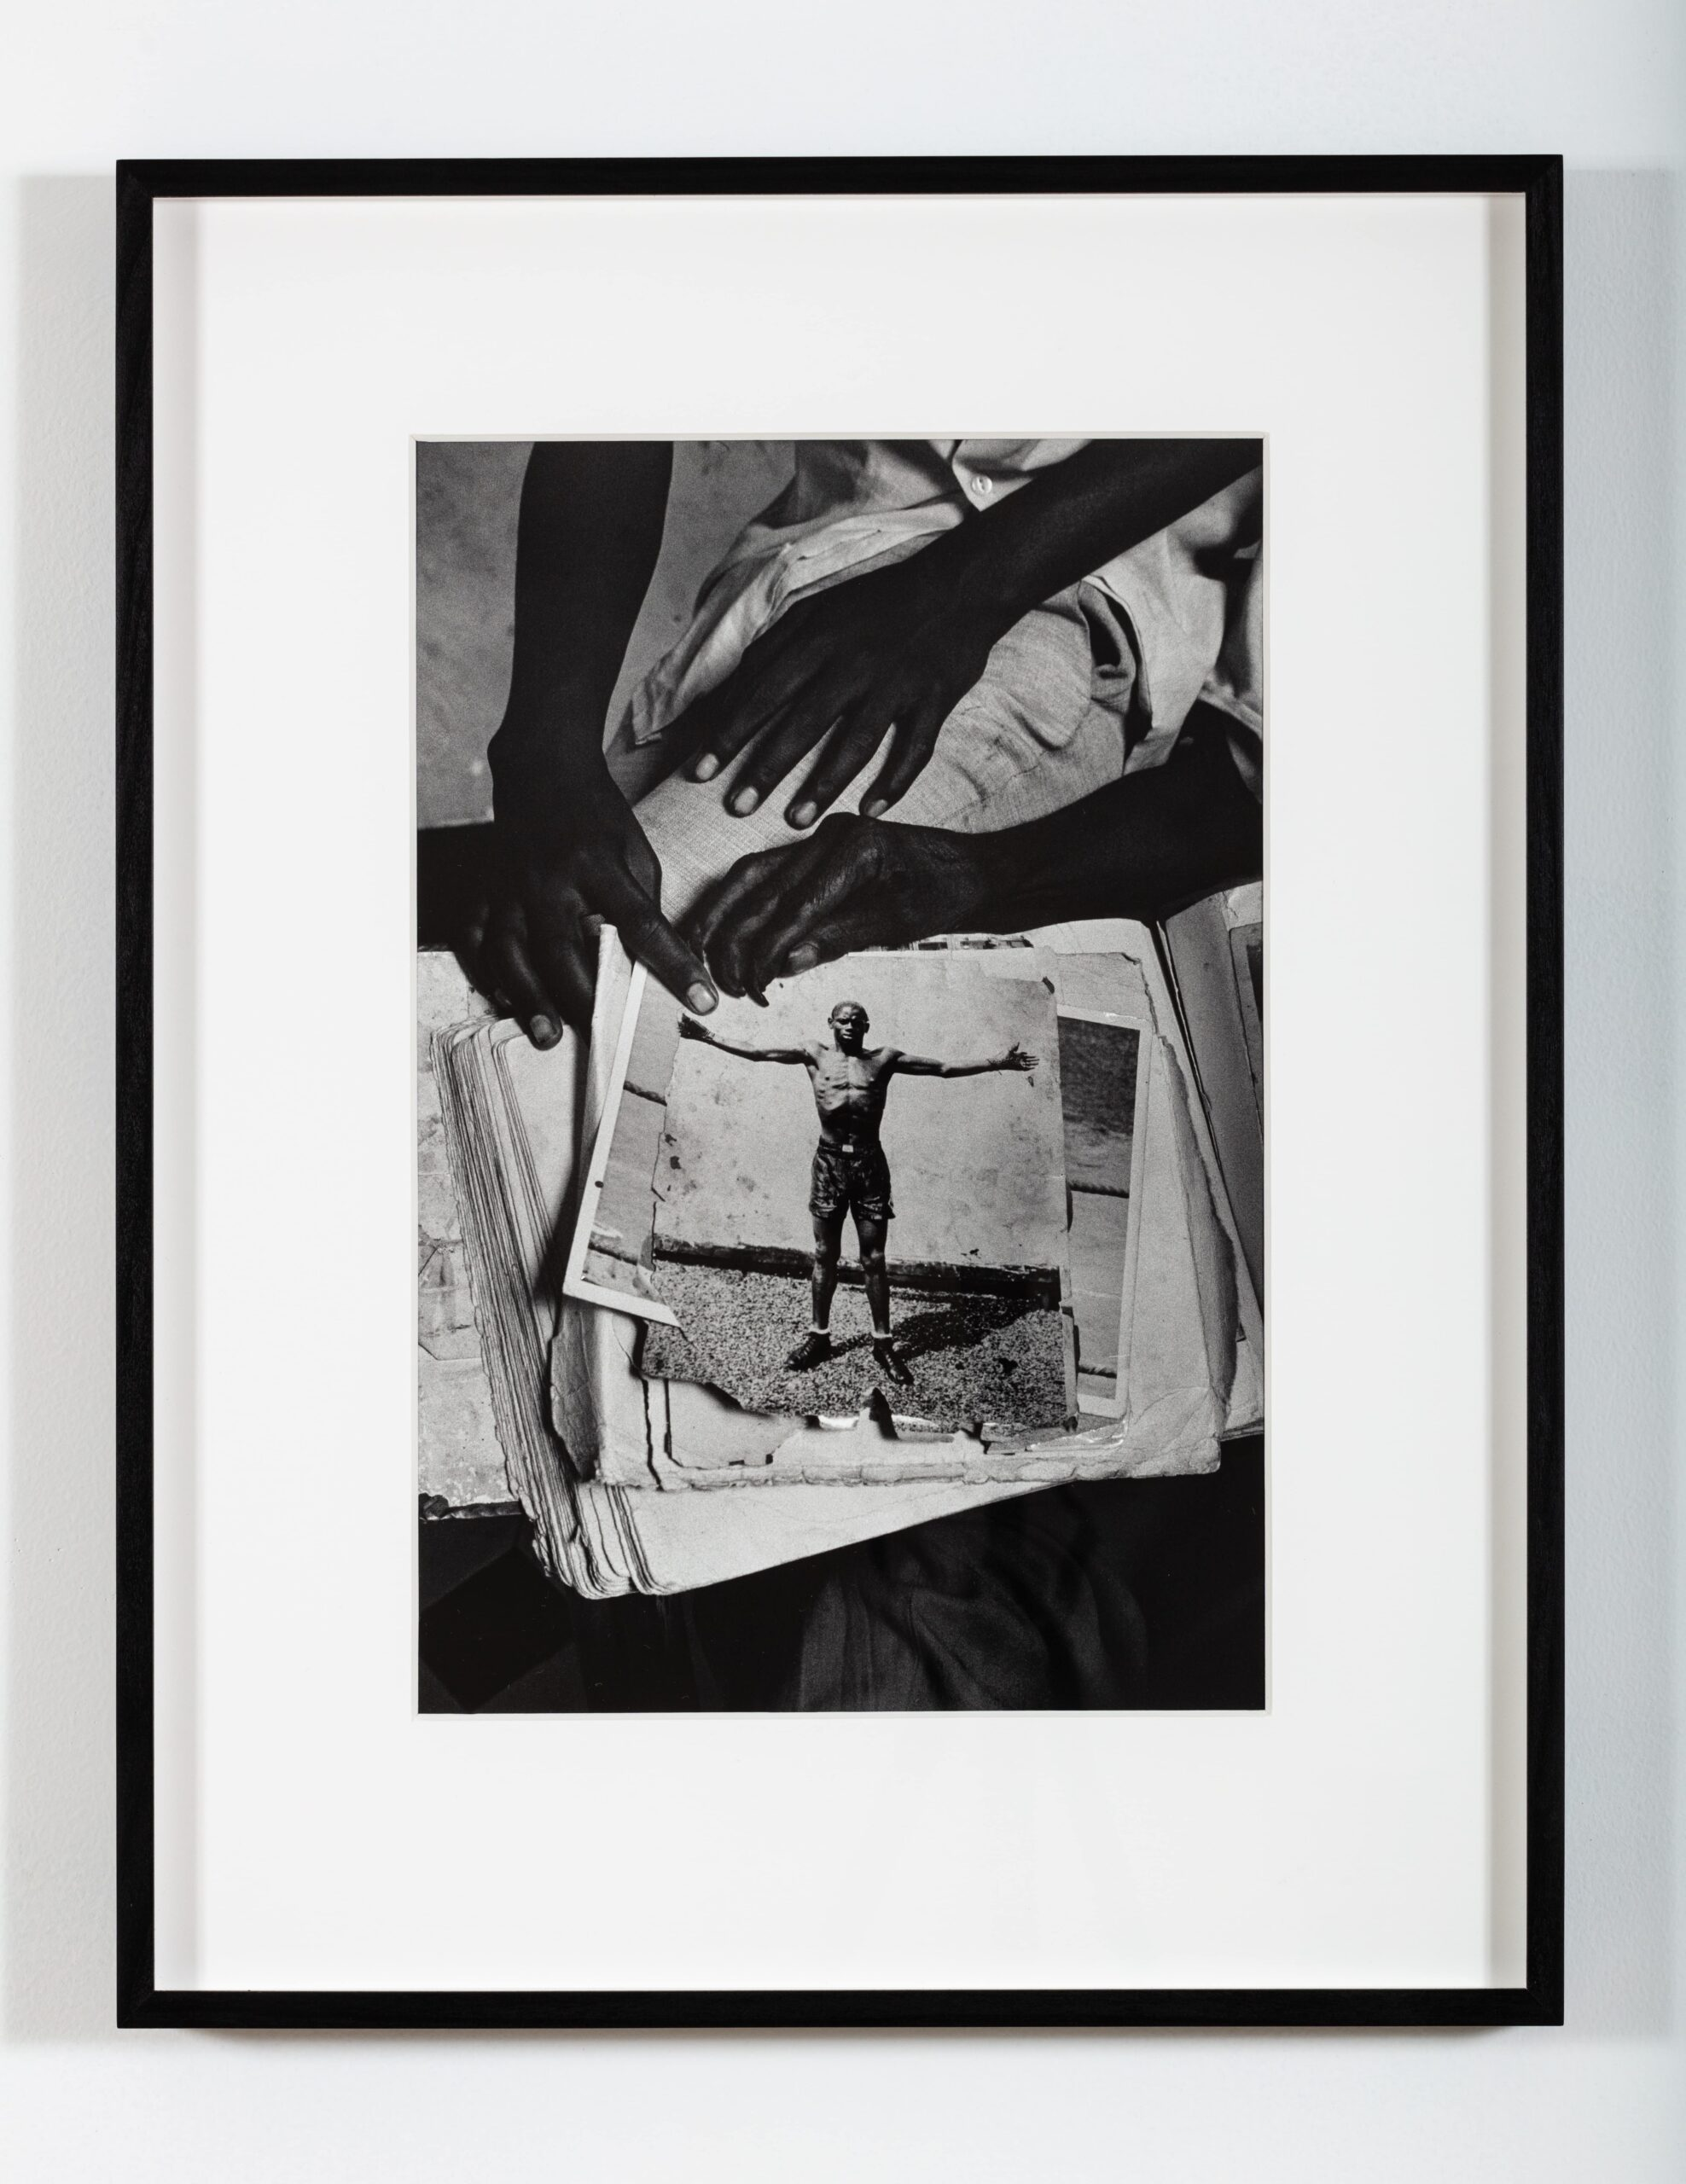 Martine Barrat photograph acquired by Mead Art Museum